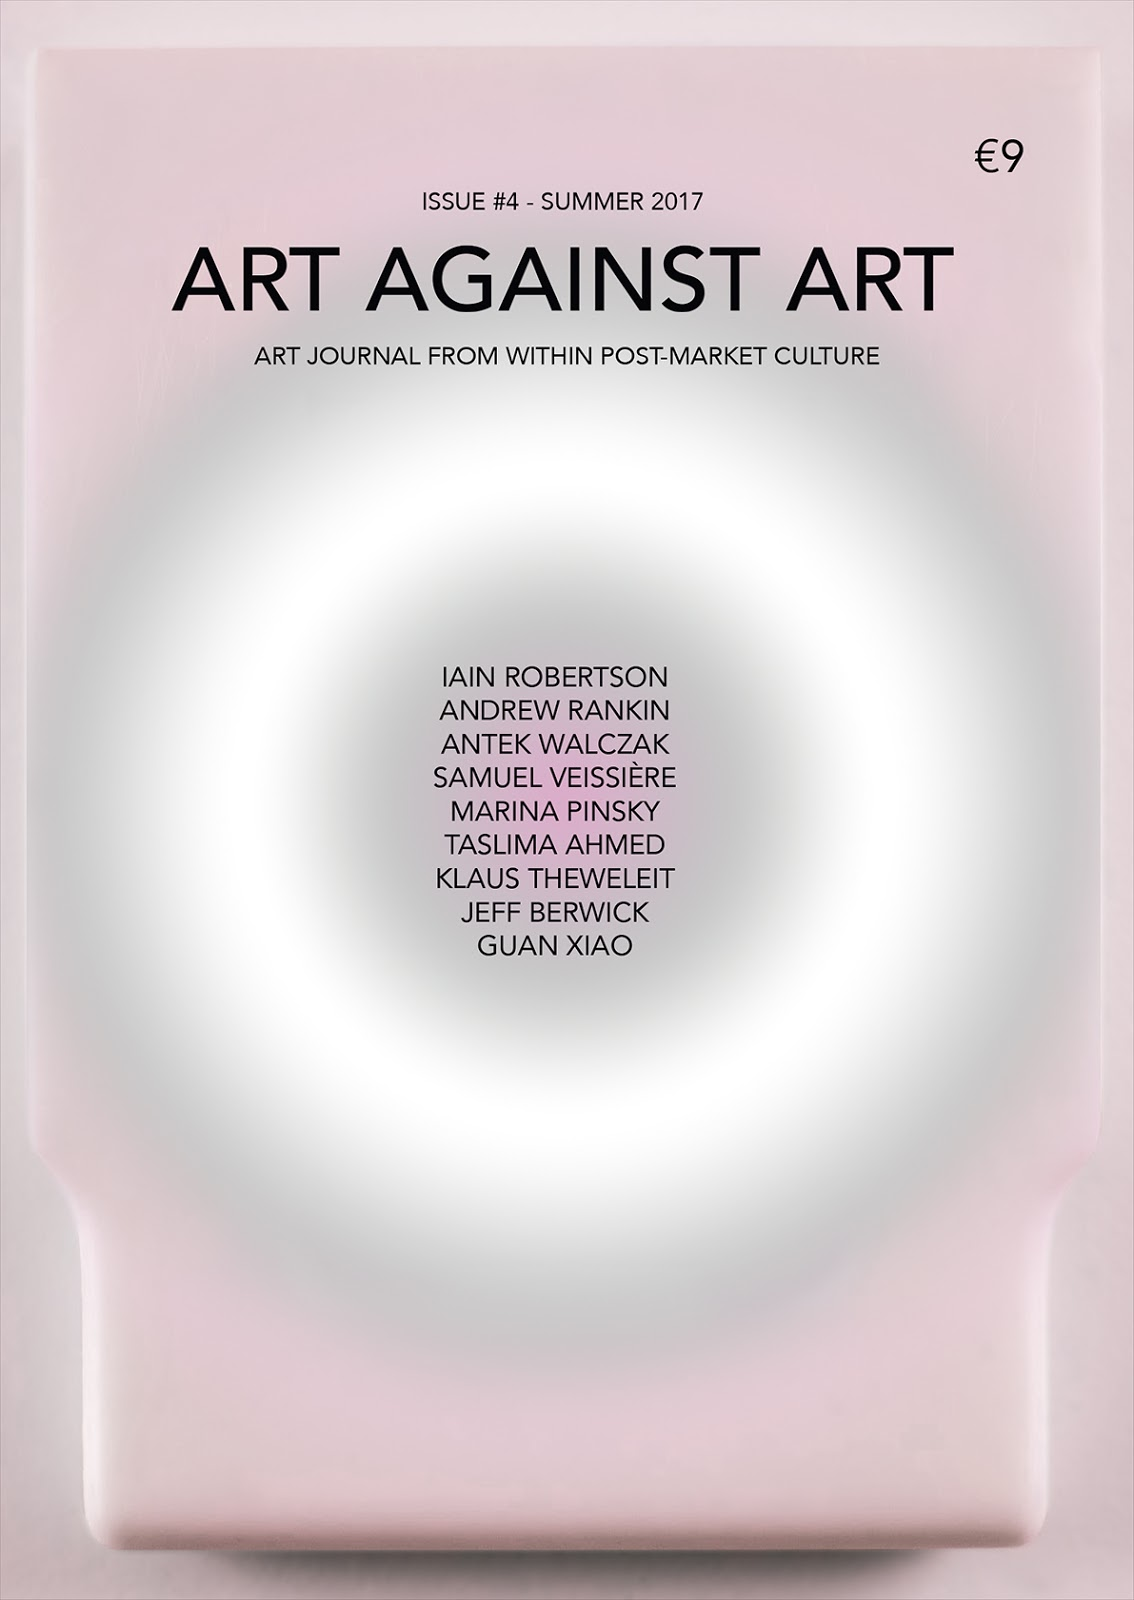 ART AGAINST ART Issue #4